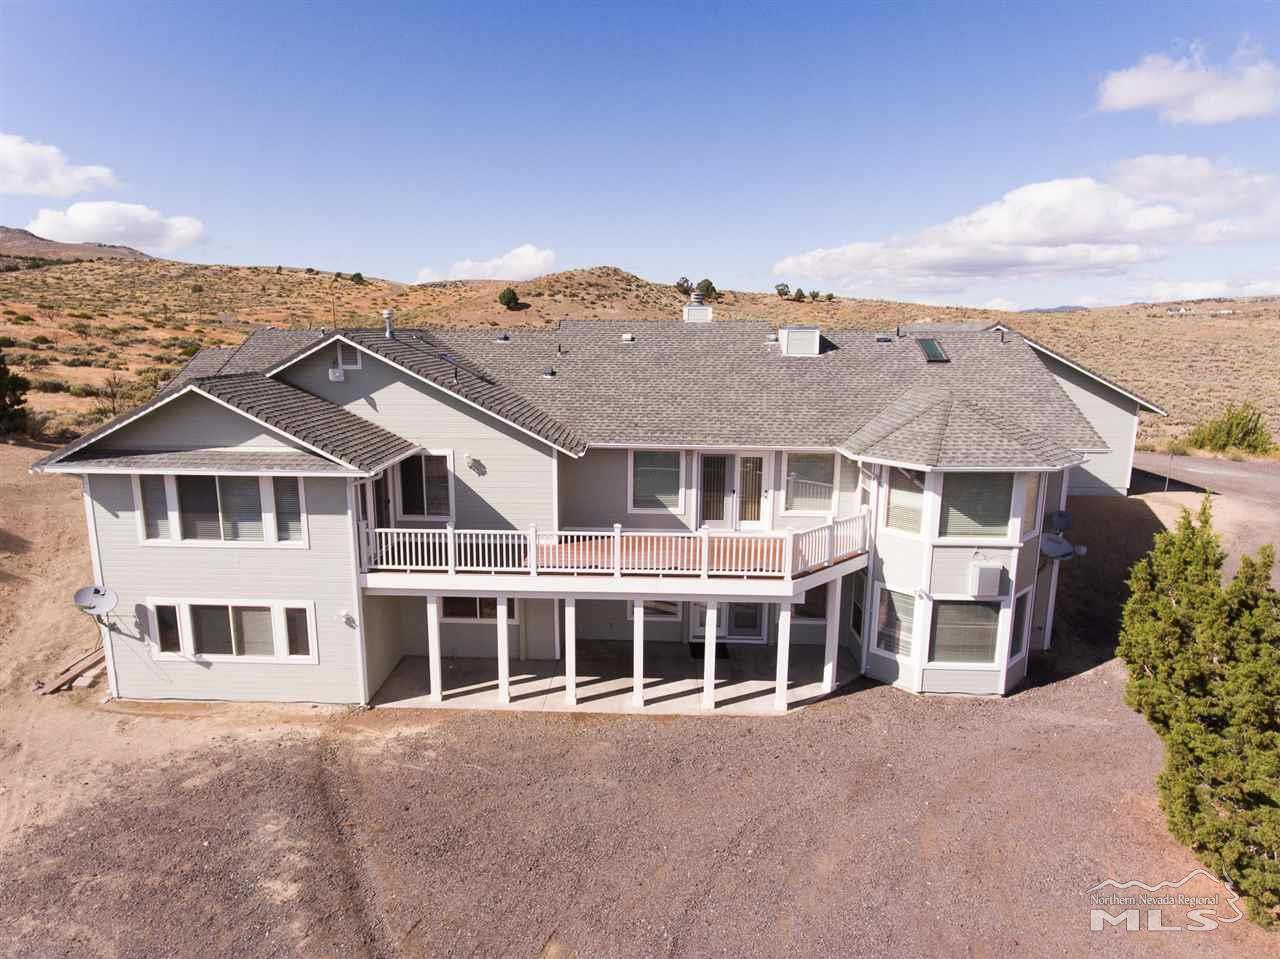 Image for 105 Alpha Butte Rd, Reno, NV 89508-7362